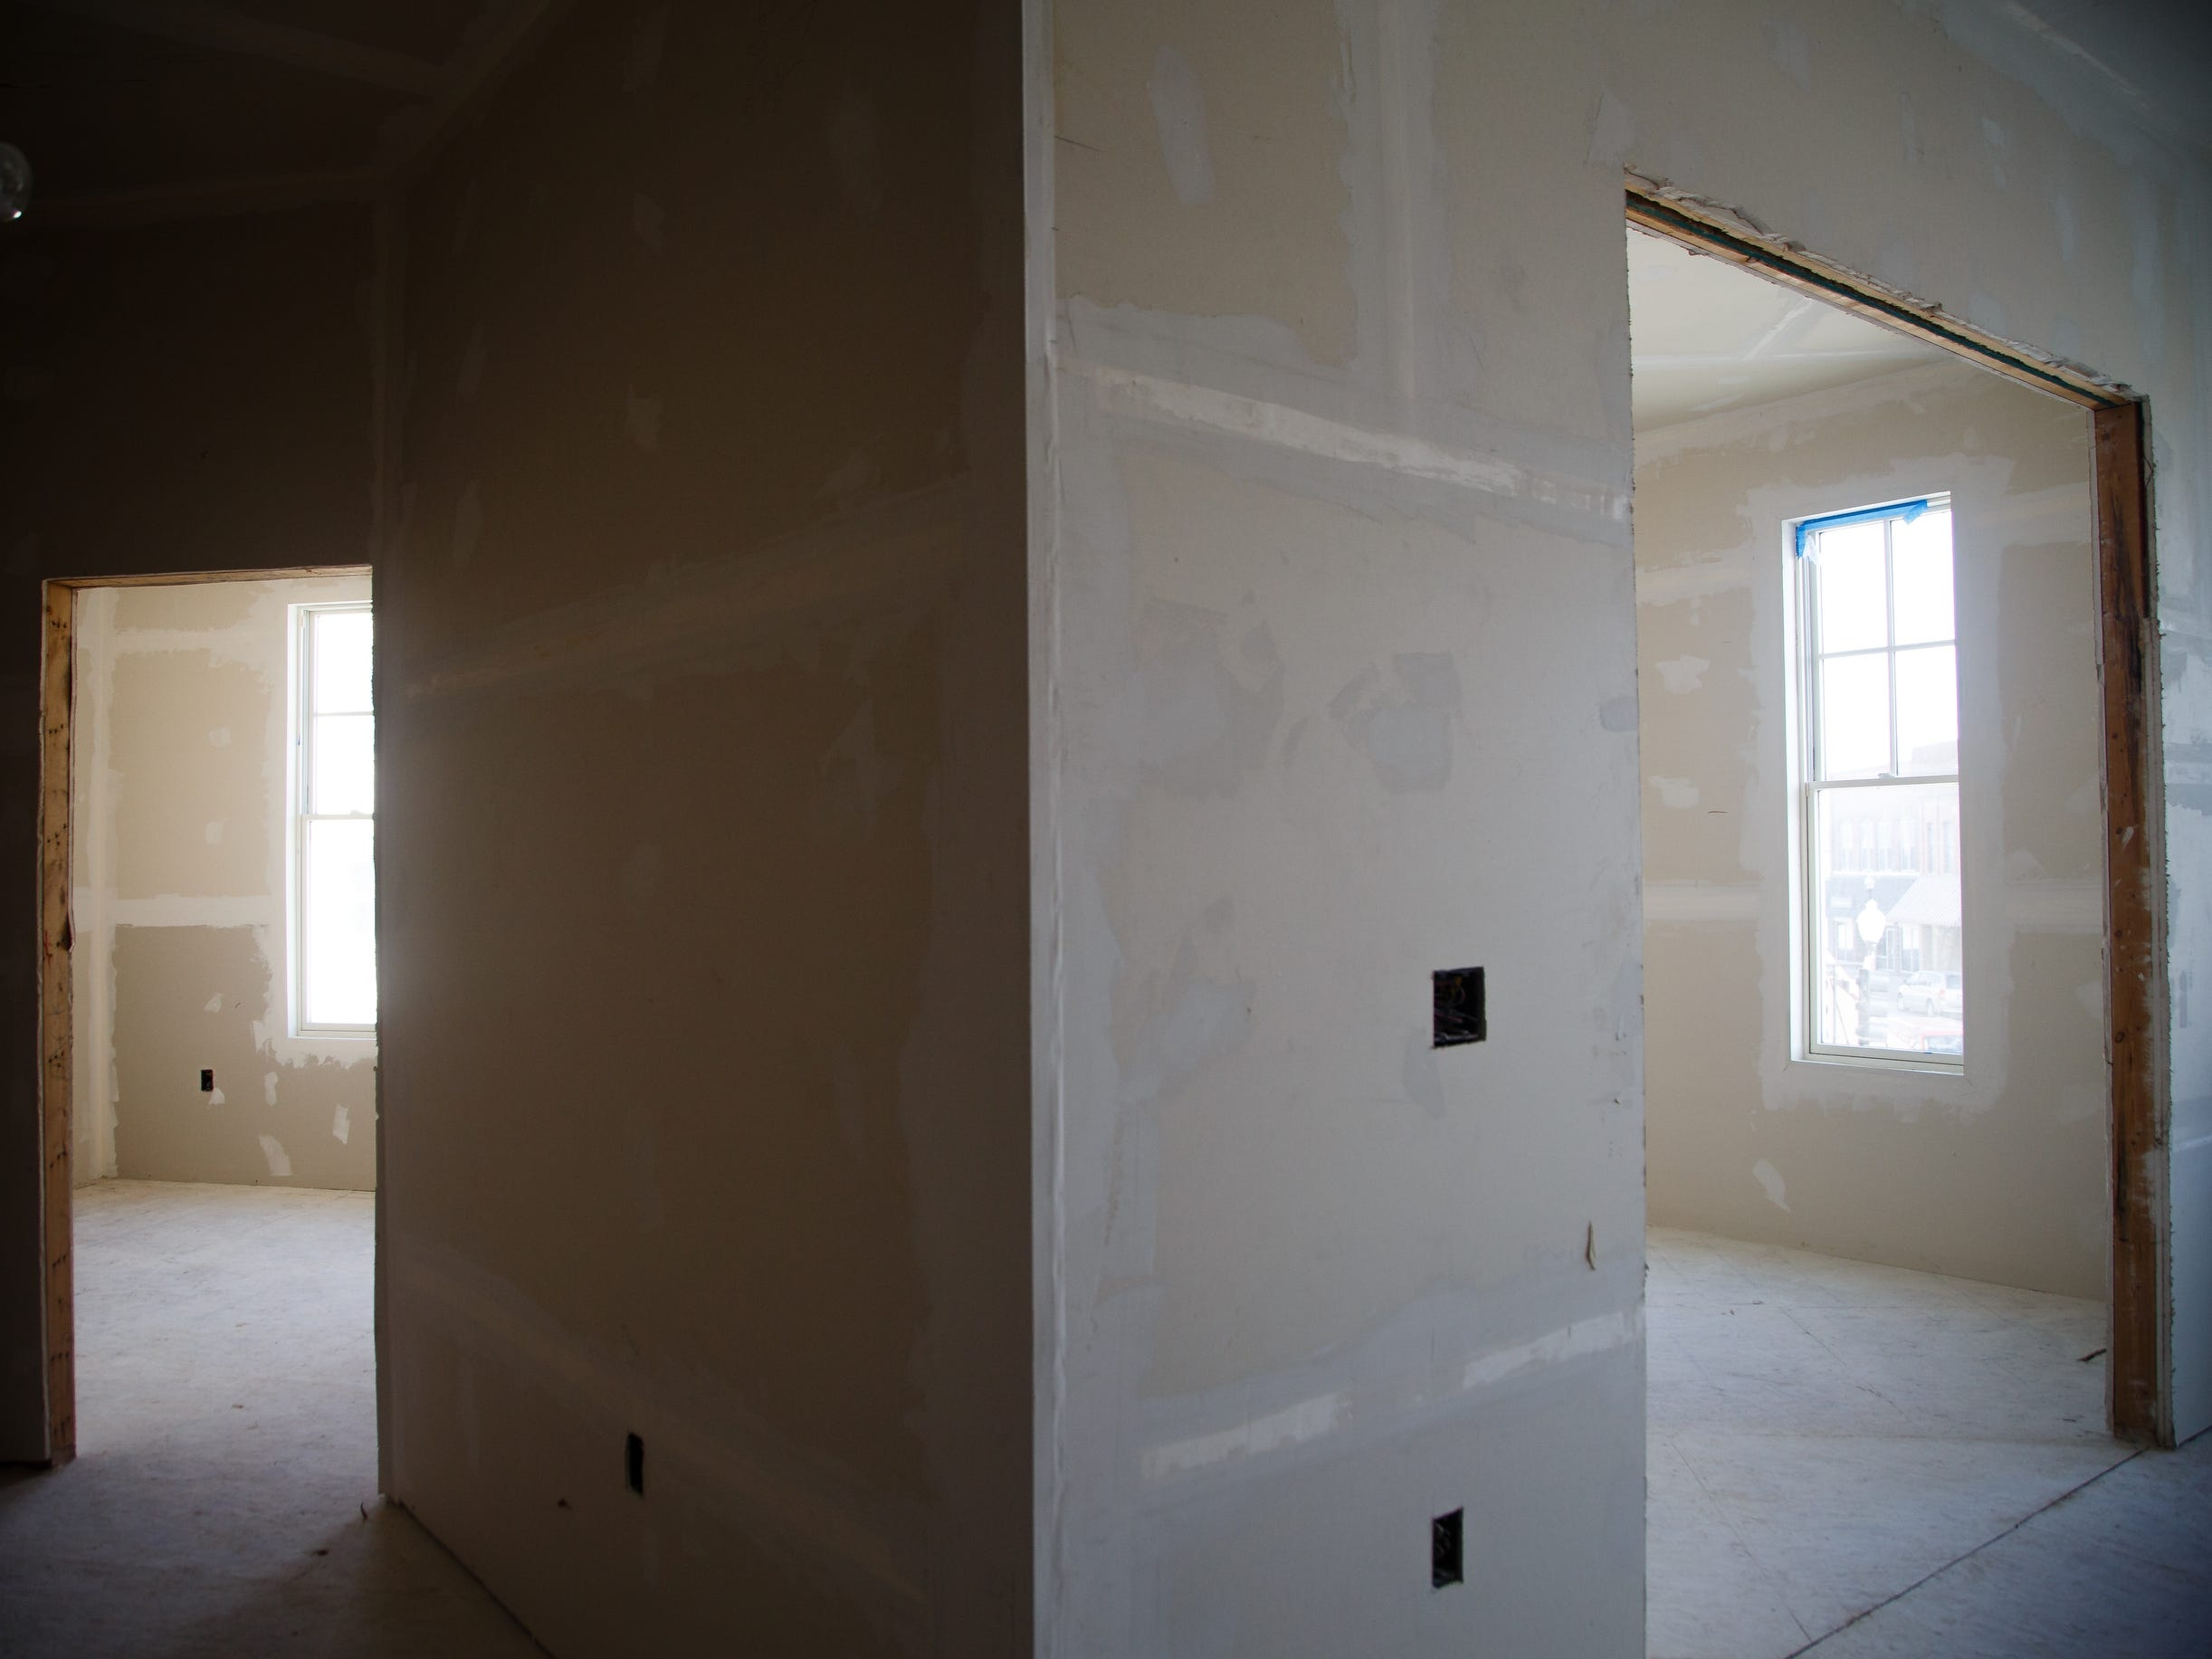 An unfinished apartment in McQuillen Place is seen on Wednesday, Jan. 16, 2019, in Charles City. The project sits on a corner of Charles City's busiest intersection and includes one floor of Main Street retail space with two floors of apartments. Owner Charles Thomson used a multitude of financing deals to fund the project including money from the Iowa Economic Development Authority, whom he claims pulled out after saying he missed an arbitrary deadline. Without the state funding, banks began to pull out of the project which has been sitting vacant and about 90 percent complete for the past year.